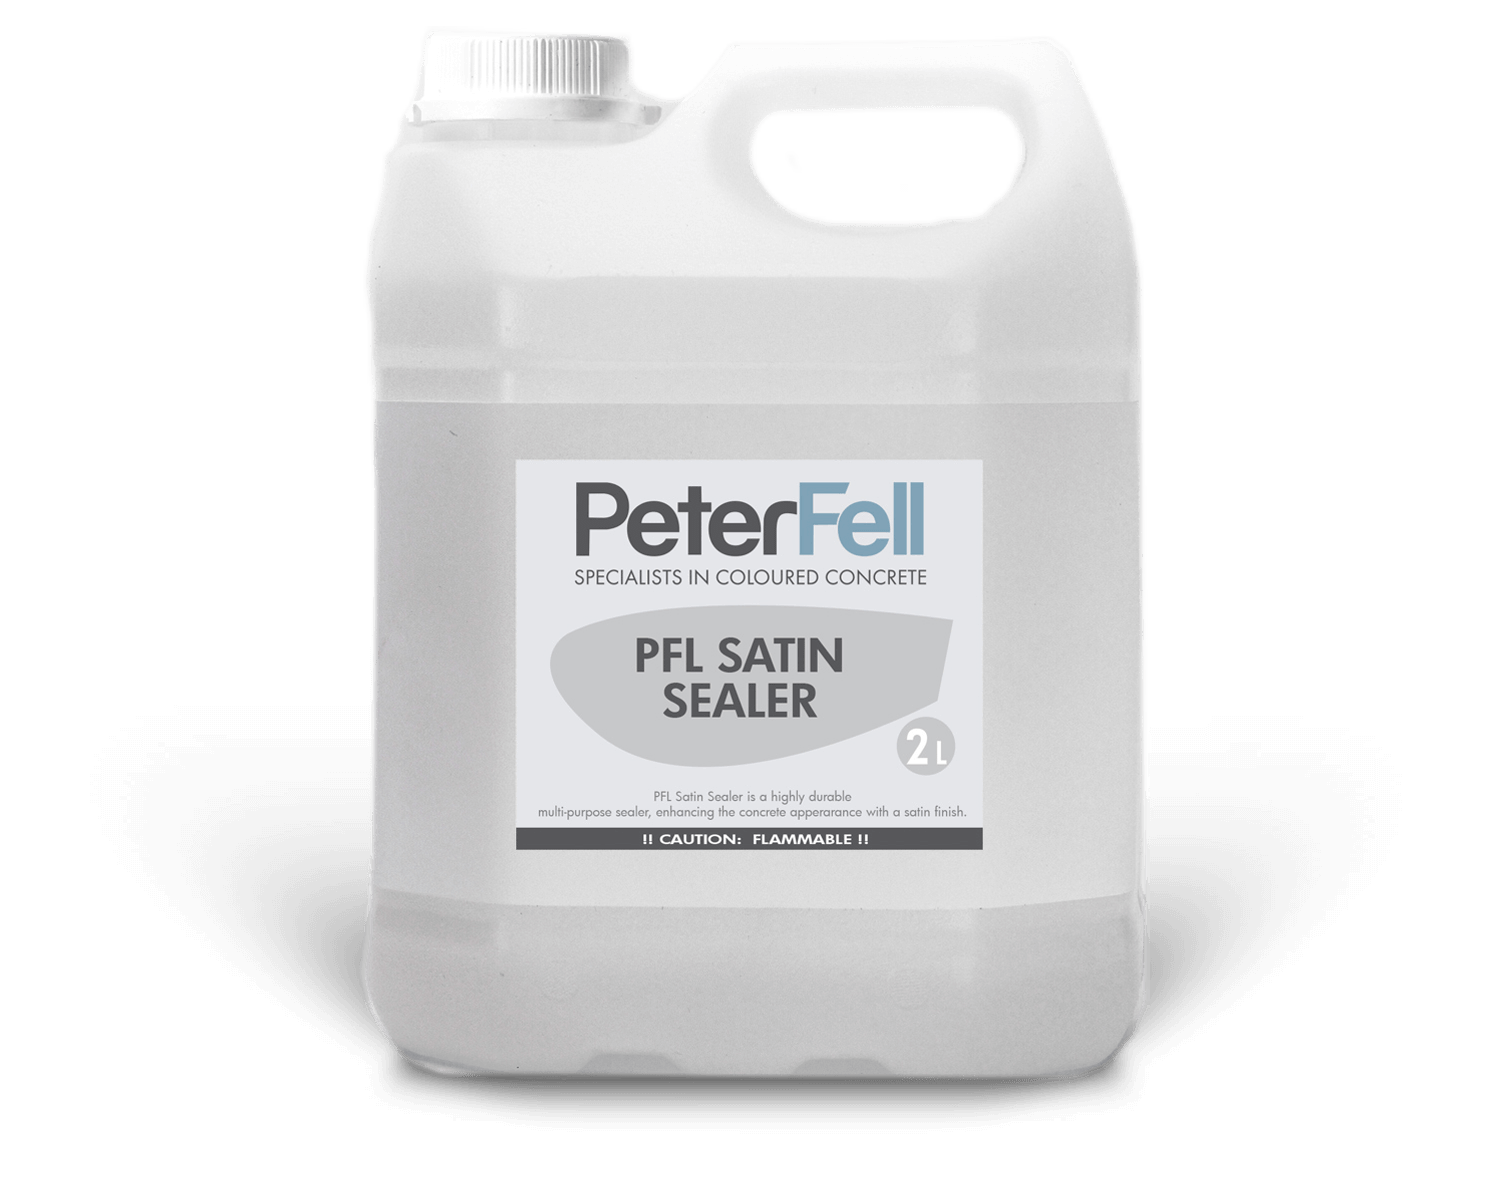 Peter Fell Satin concrete sealer 2 litre bottle